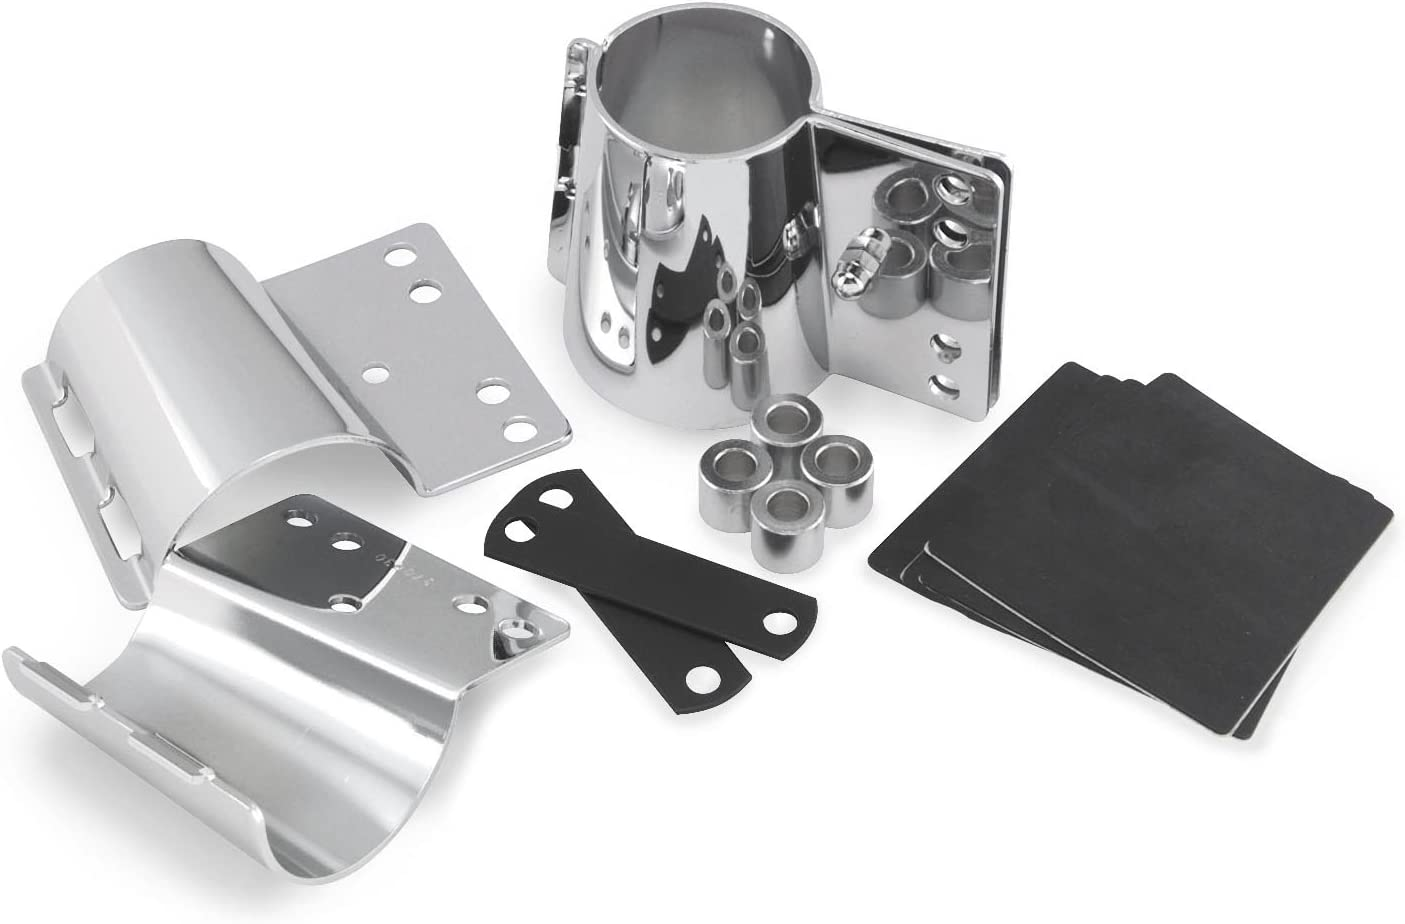 National Cycle KIT-CJE Windshield Mounting Kit